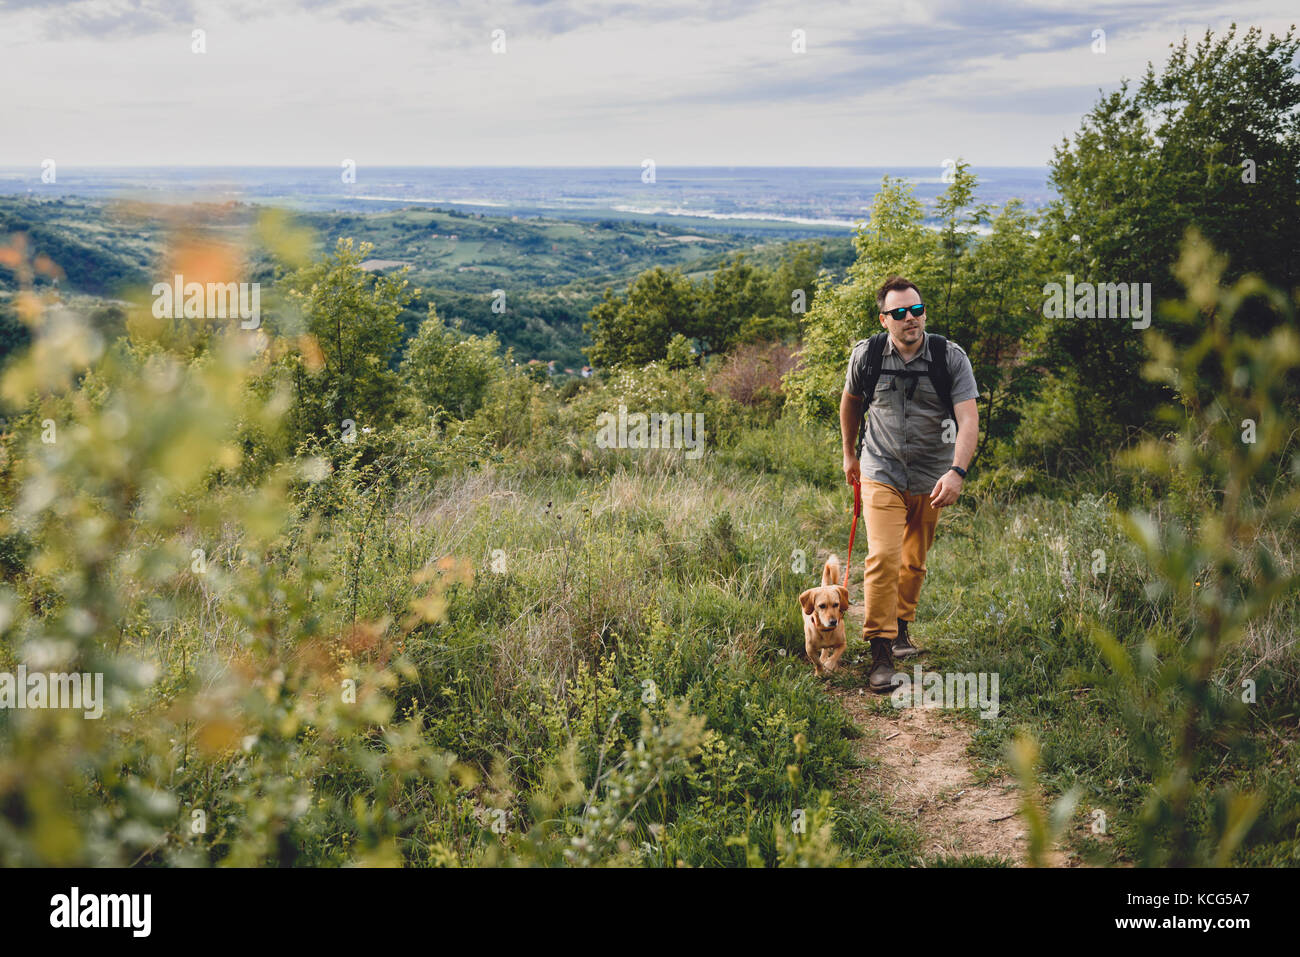 Man with a dog walking along a hiking trail on the mountain - Stock Image